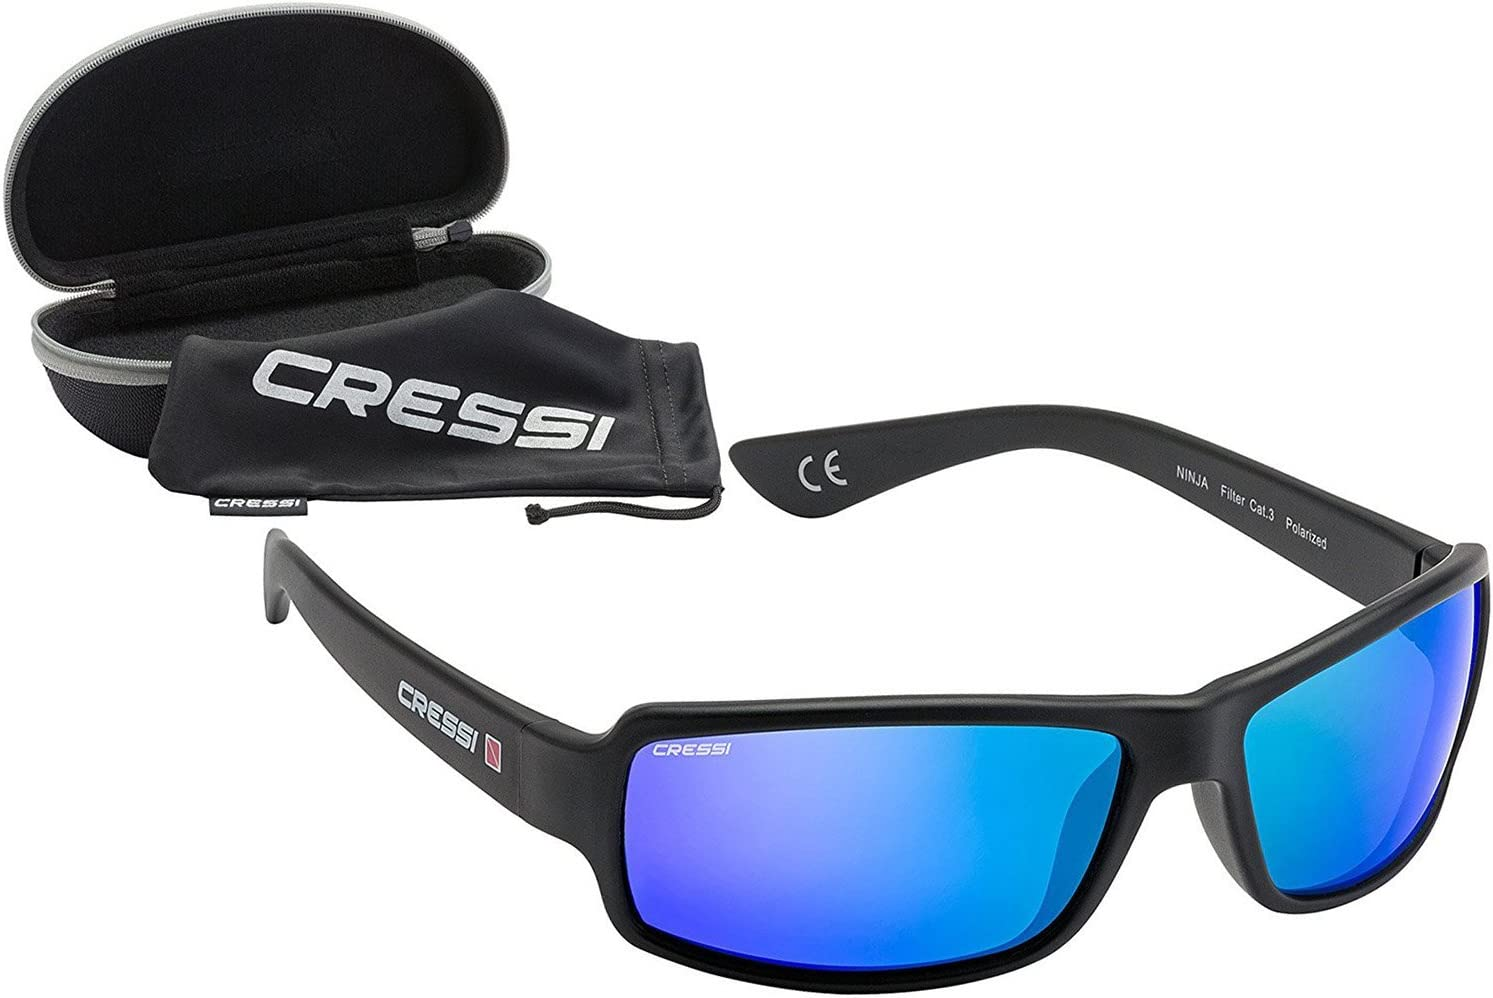 Cressi Ninja, Adult Sport Sunglasses, Polarized Lenses, Protective Case | Best for Boating, Sailing, Fishing, Running, Hiking, Cycling